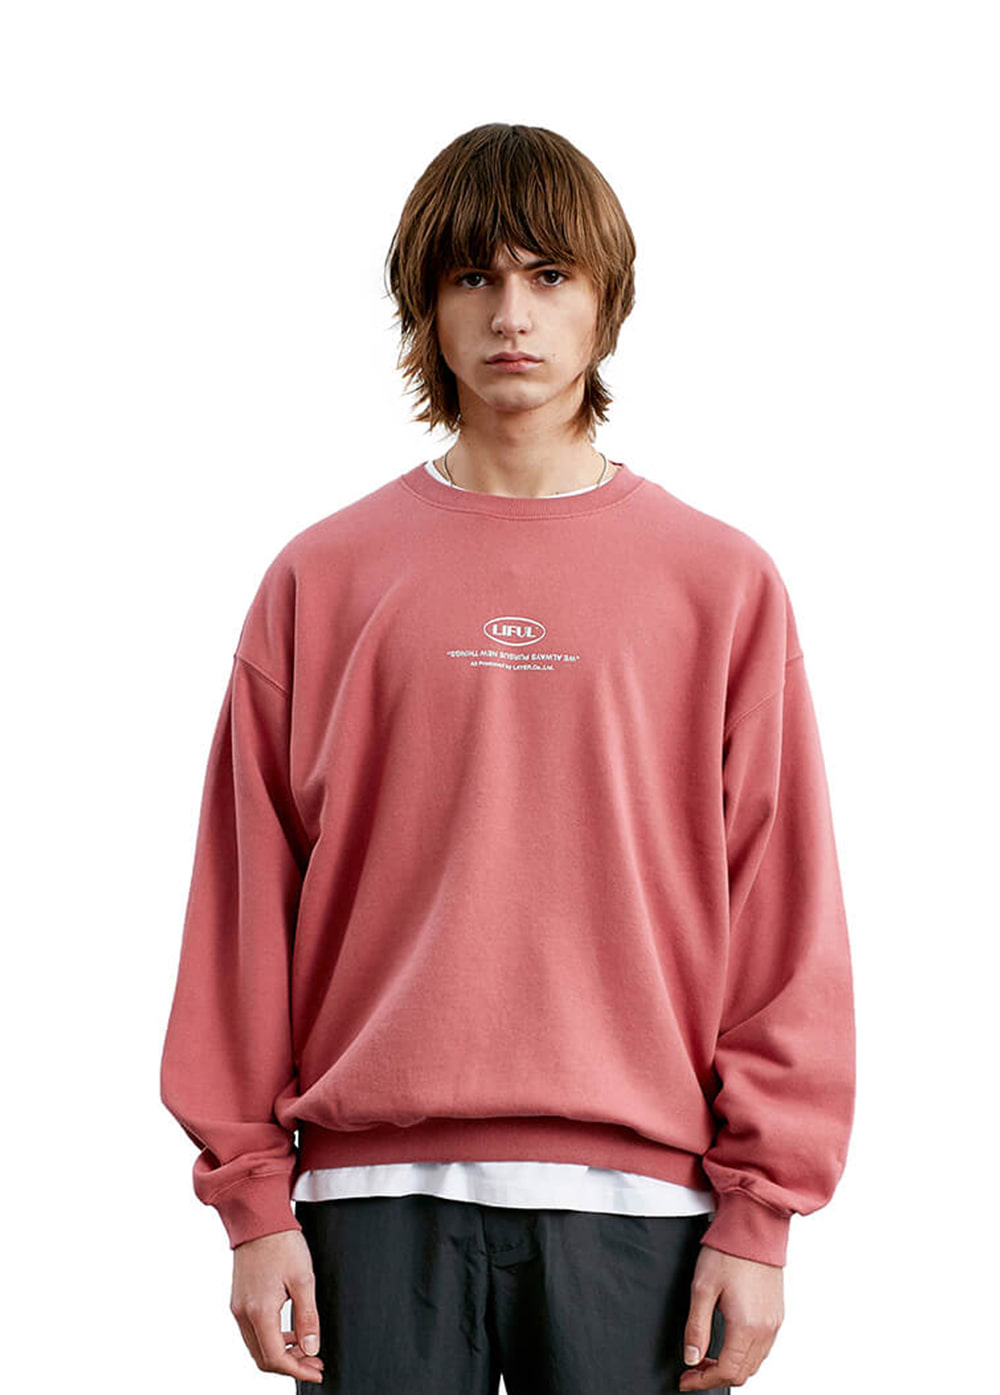 LIFUL MINI OVAL LOGO SWEATSHIRT pink